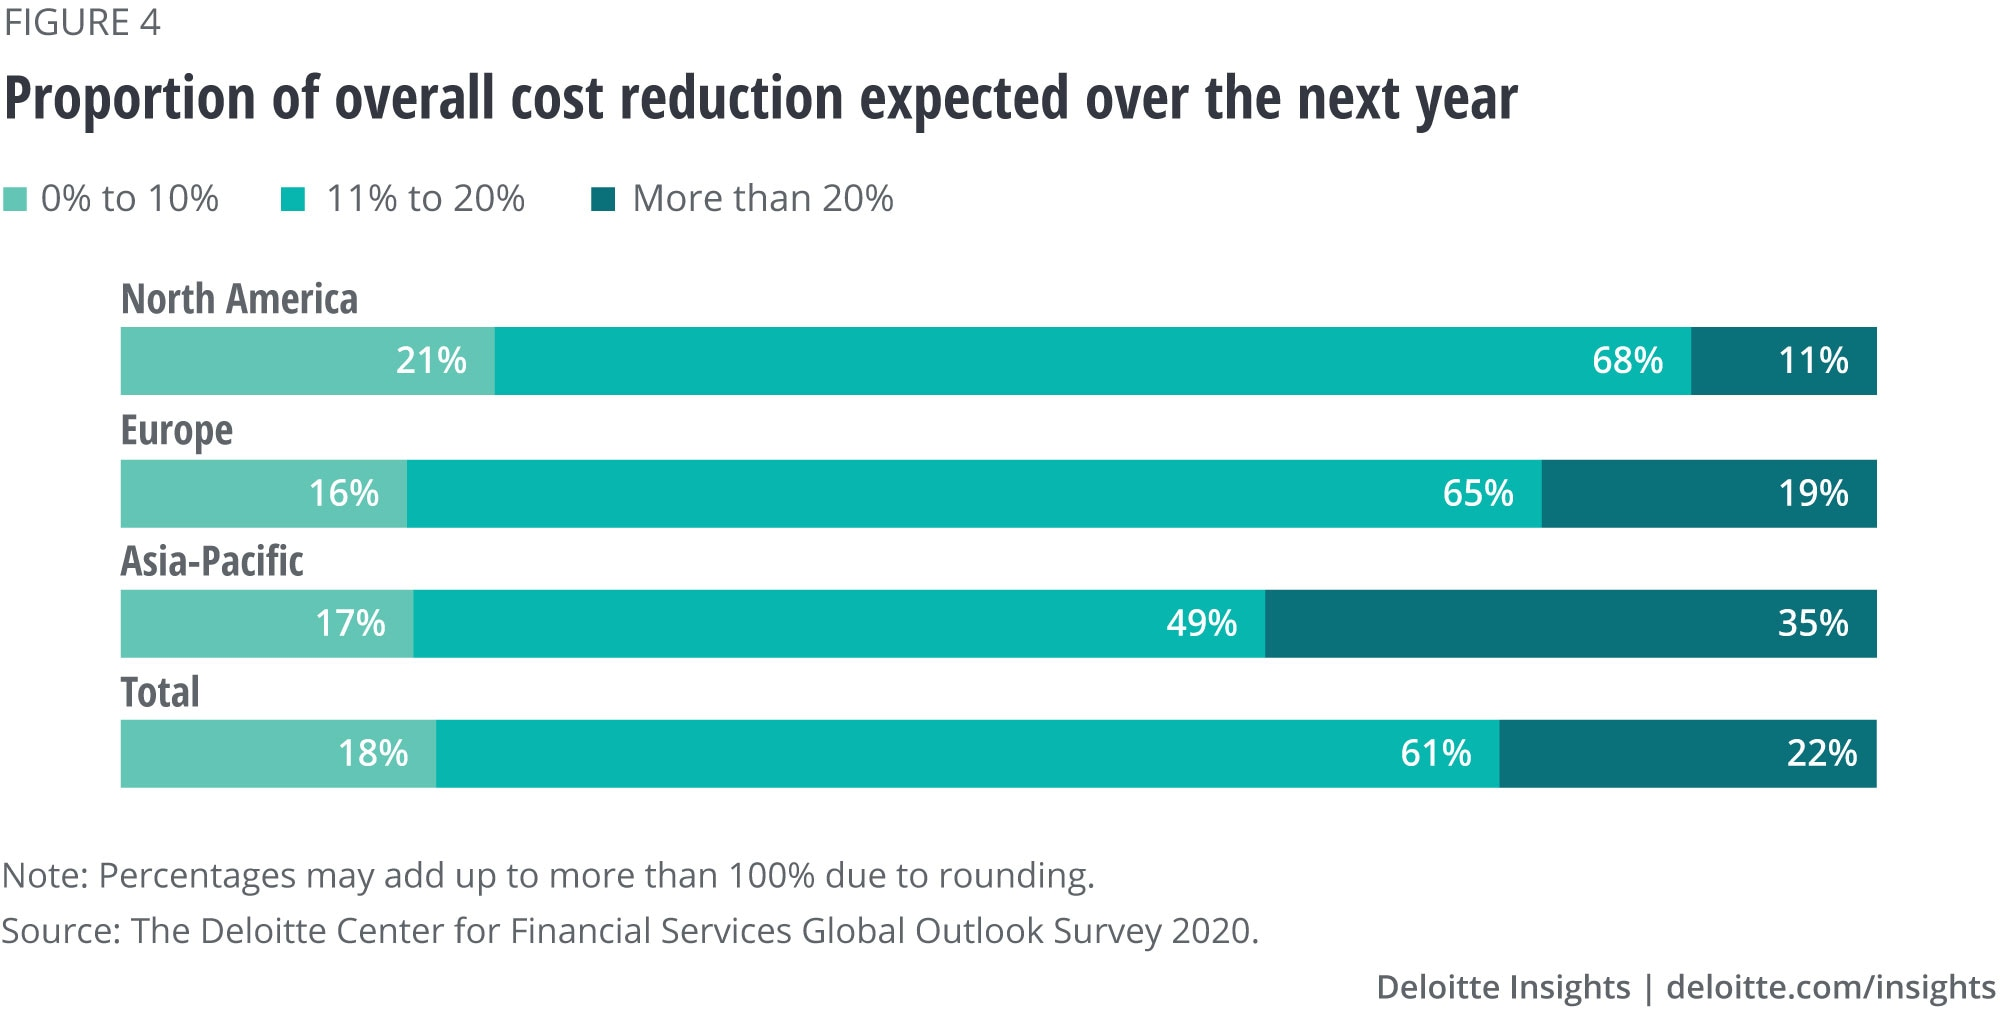 Proportion of overall cost reduction expected for the next year